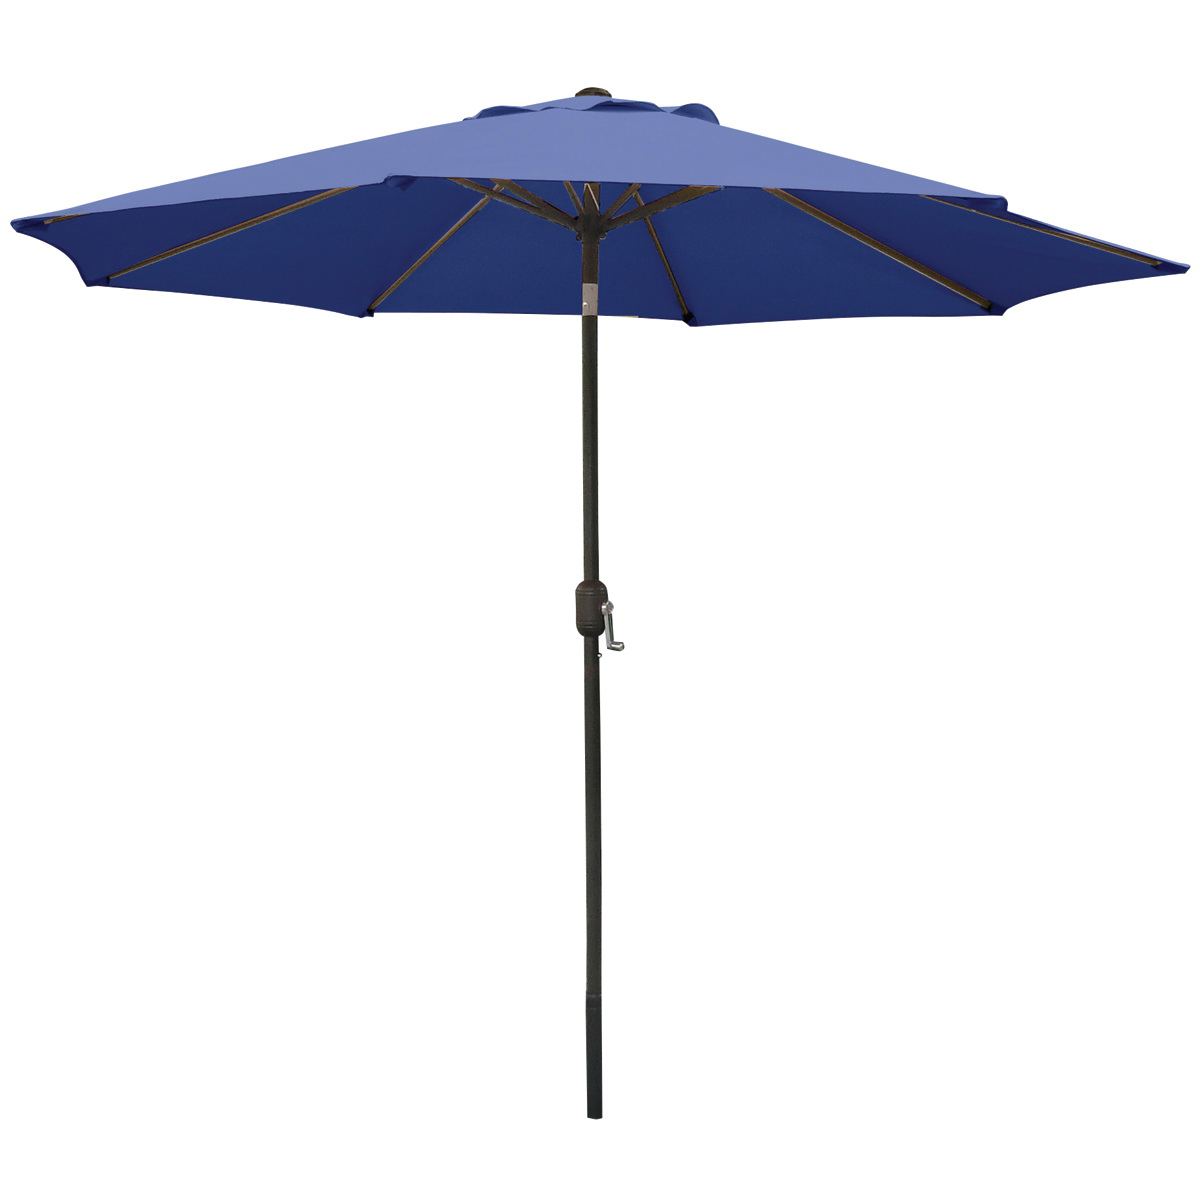 Picture of Seasonal Trends 60033 Crank Umbrella, 92.9 in H, 107.9 in W Canopy, 107.9 in L Canopy, Round Canopy, Steel Frame